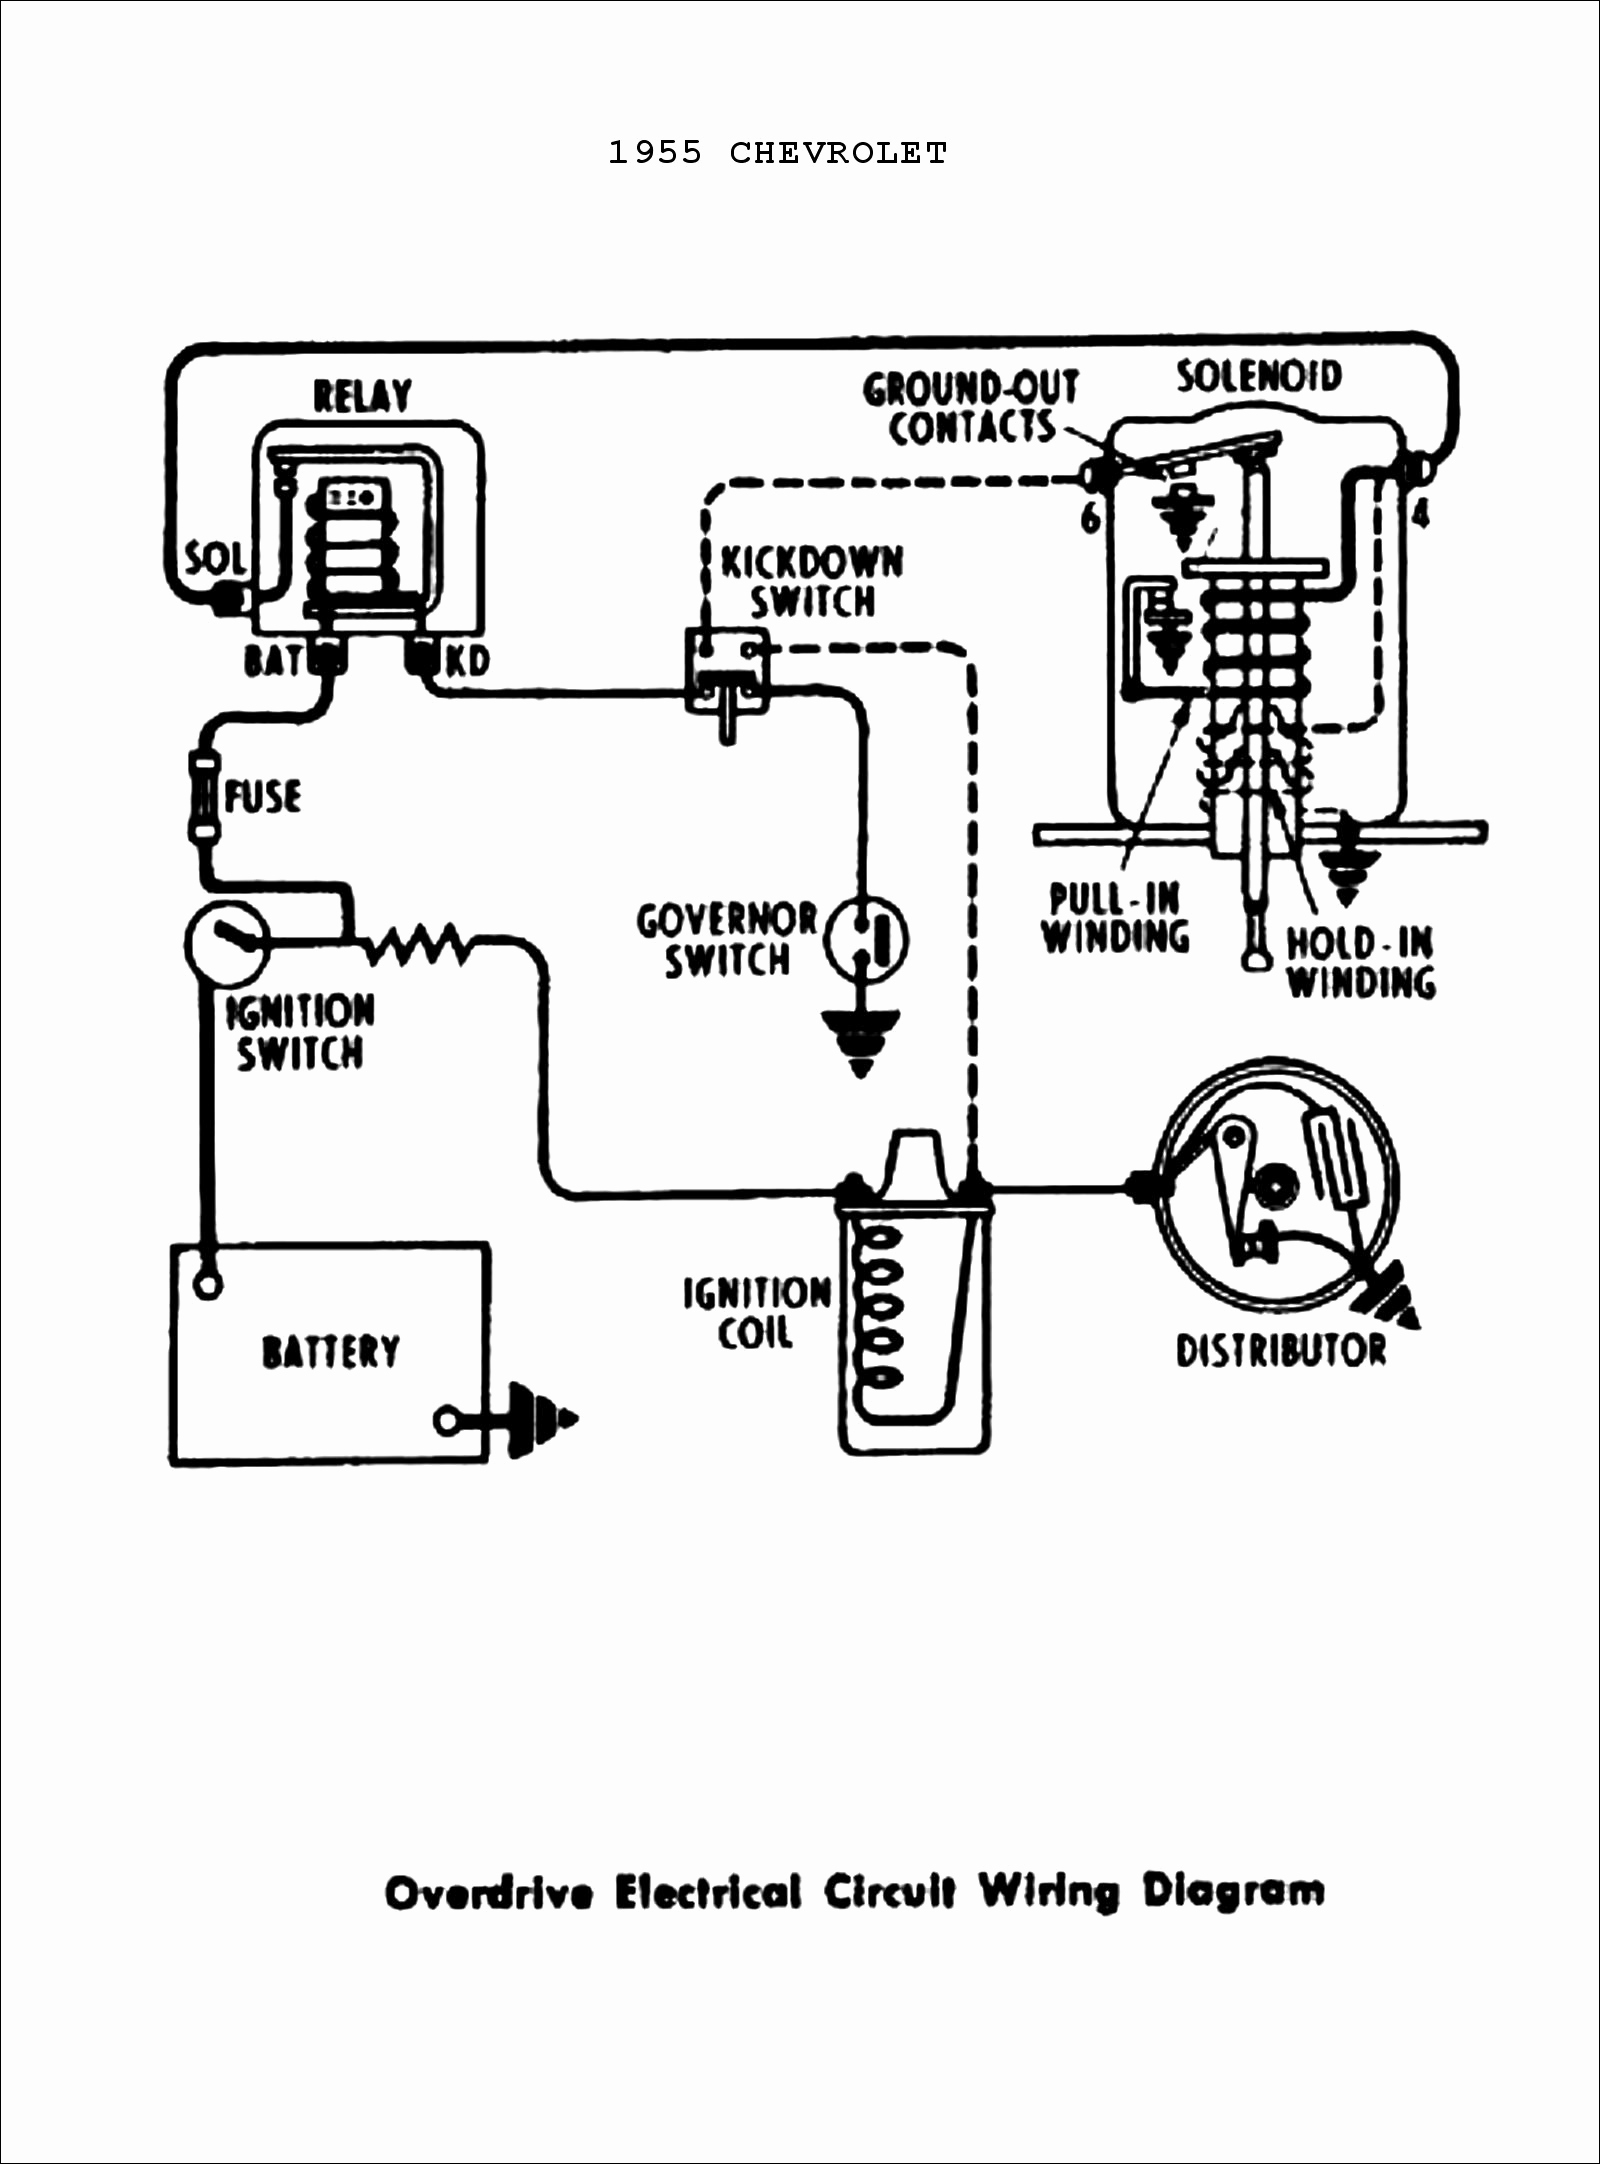 57 Chevy Turn Signal Wiring Diagram | Wiring Diagram Database on 7-wire turn signal diagram, turn signal switch diagram, 900 signal switch wire diagram, harley-davidson sportster wiring diagram, 1955 chevy turn signal diagram, turn signal flasher diagram, badlands module diagram, 1955 chevy wiring diagram, basic harley wiring diagram, harley tail light wiring diagram, simple turn signal diagram, 1998 harley softail wiring diagram, 2001 sportster wiring diagram,